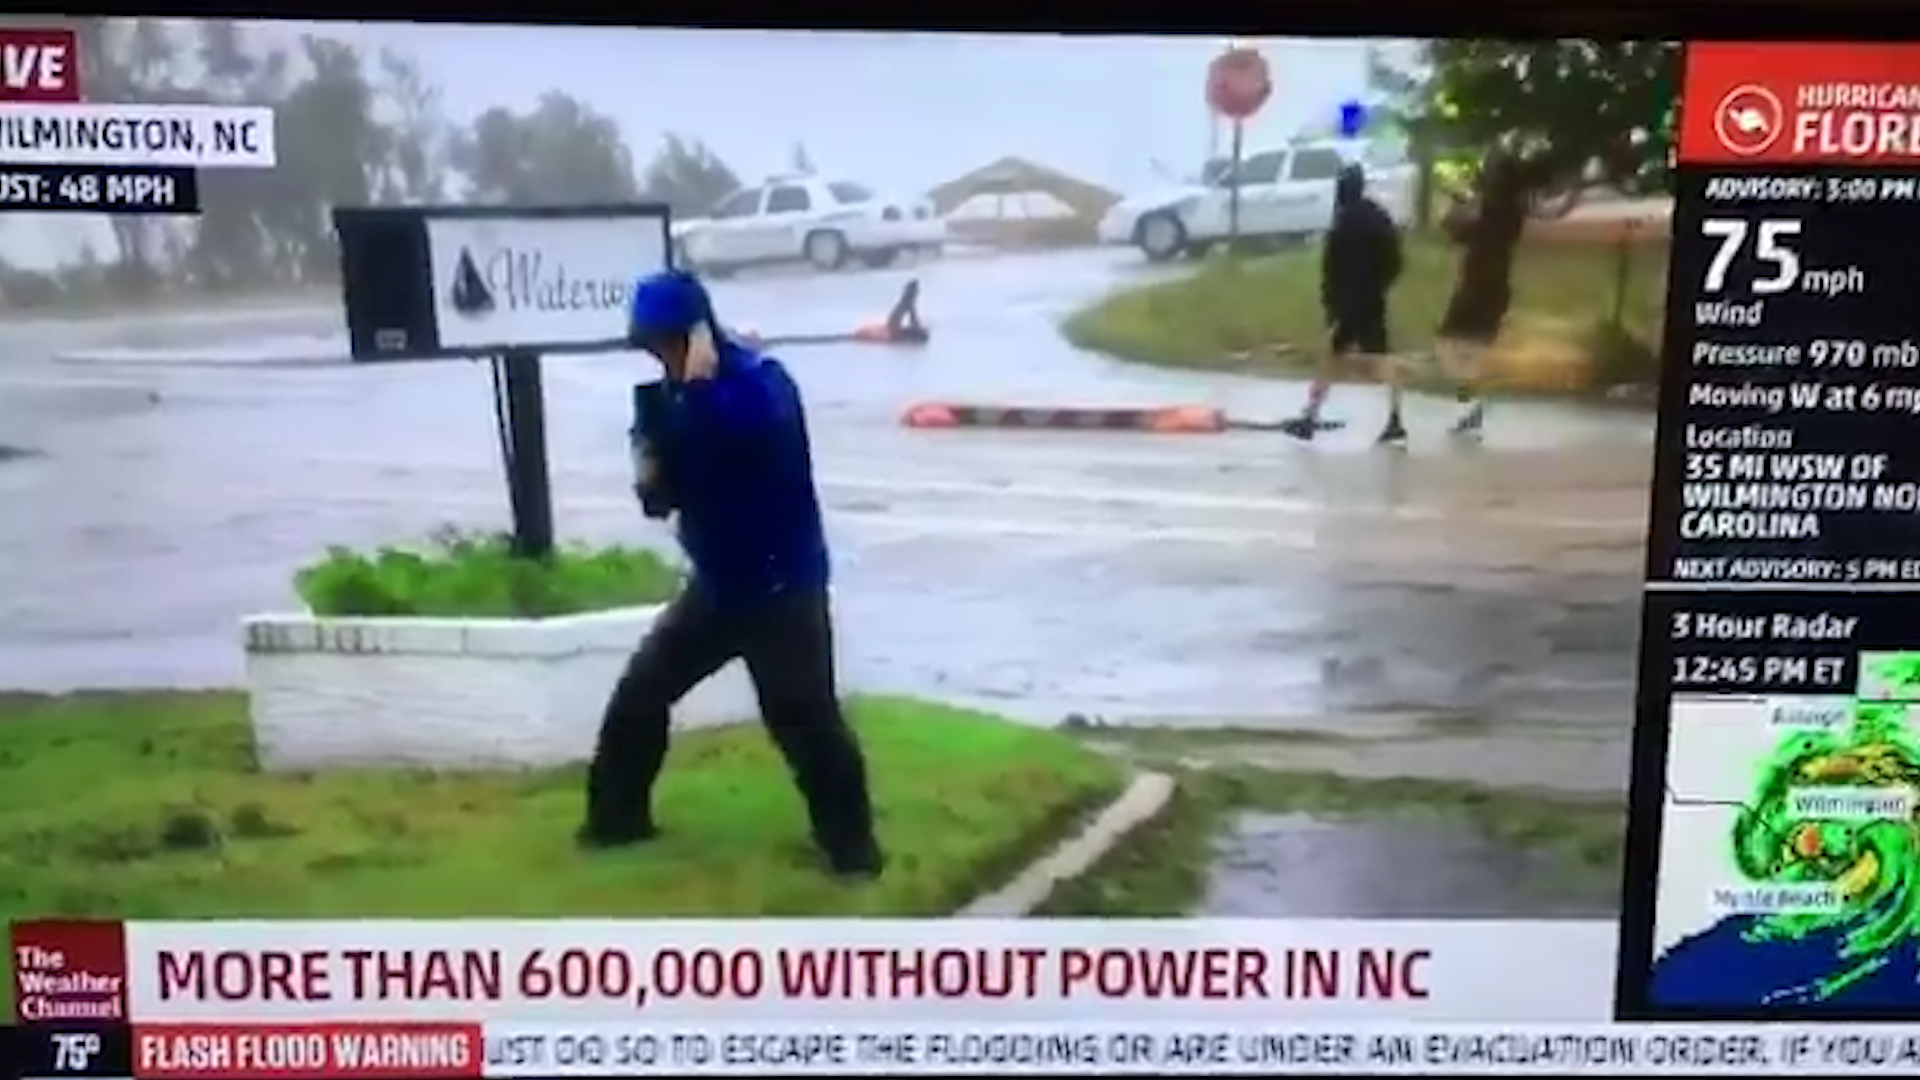 weather channel reporter mocked for overly dramatic hurricane